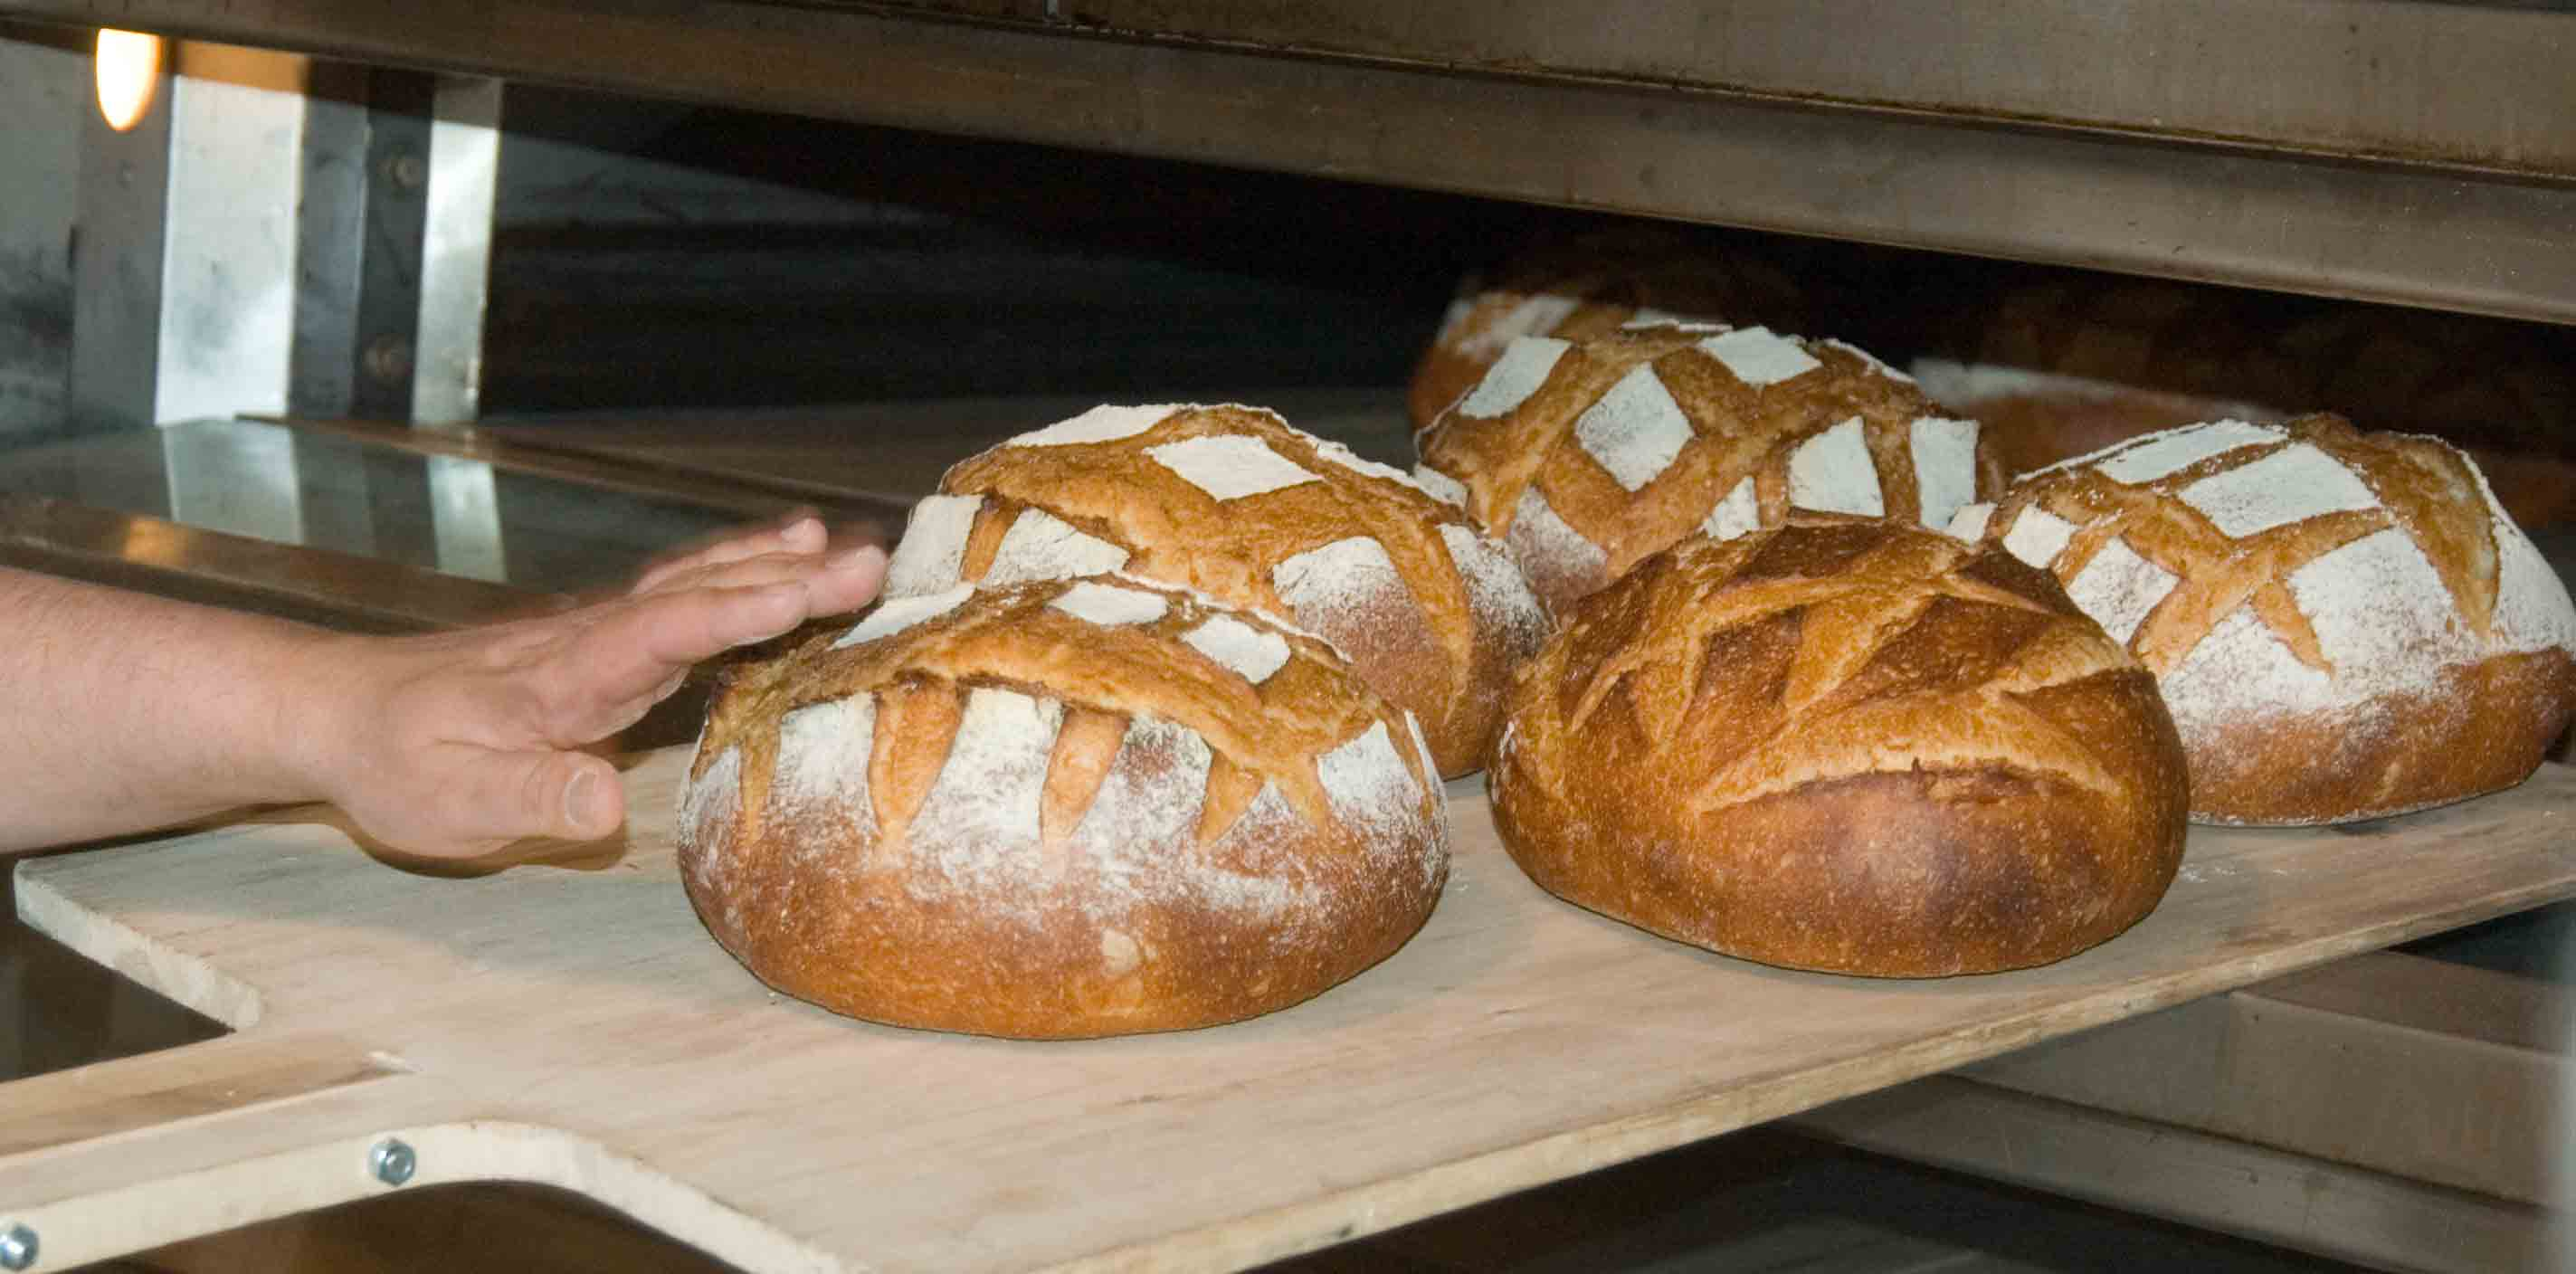 http://upload.wikimedia.org/wikipedia/commons/b/ba/Freshly_baked_bread_loaves.jpg